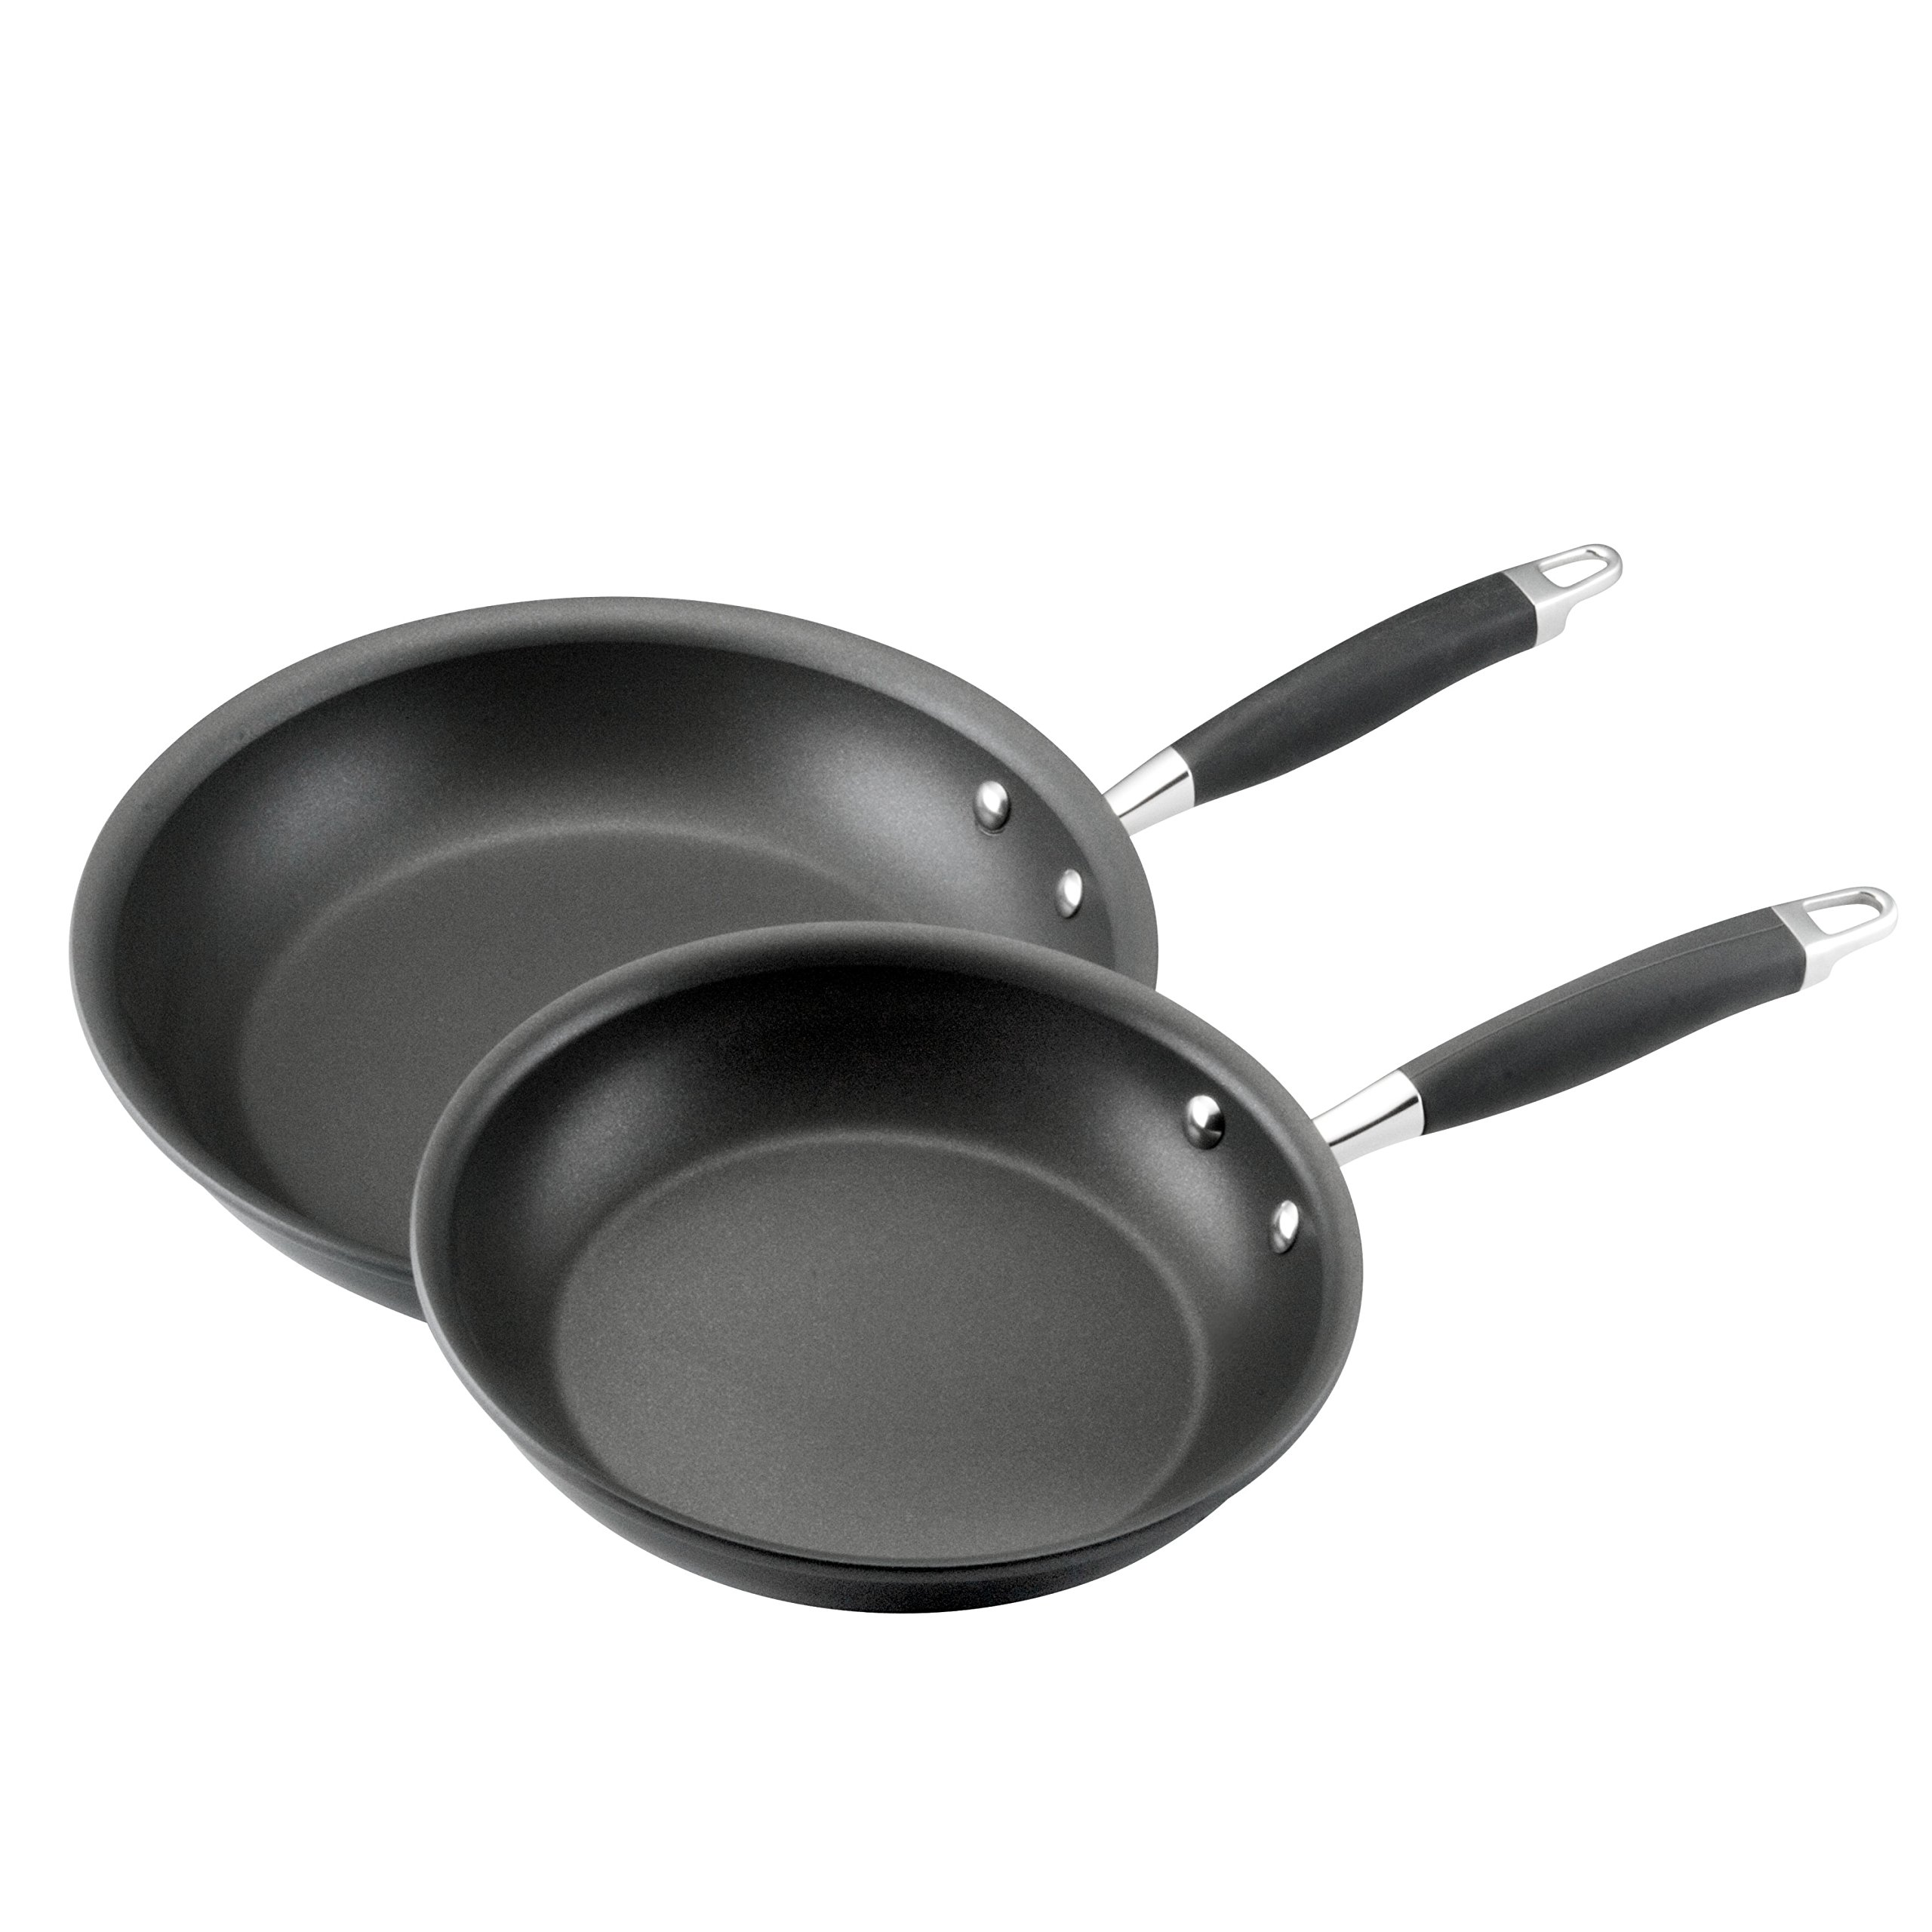 Anolon Advanced Hard Anodized Nonstick 10-Inch and 12-Inch Skillets Twin Pack